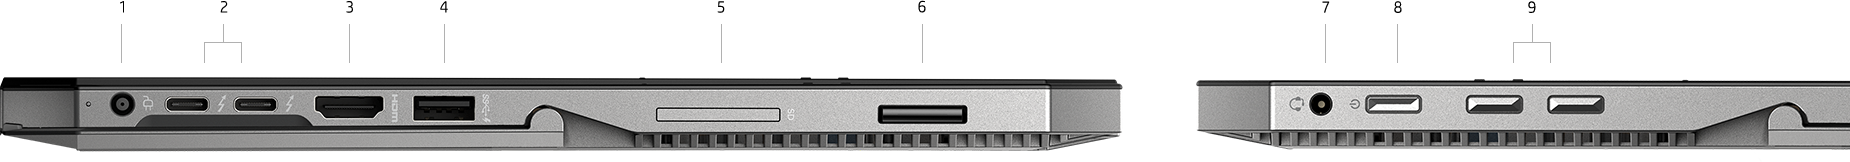 Side view of x2 with ports